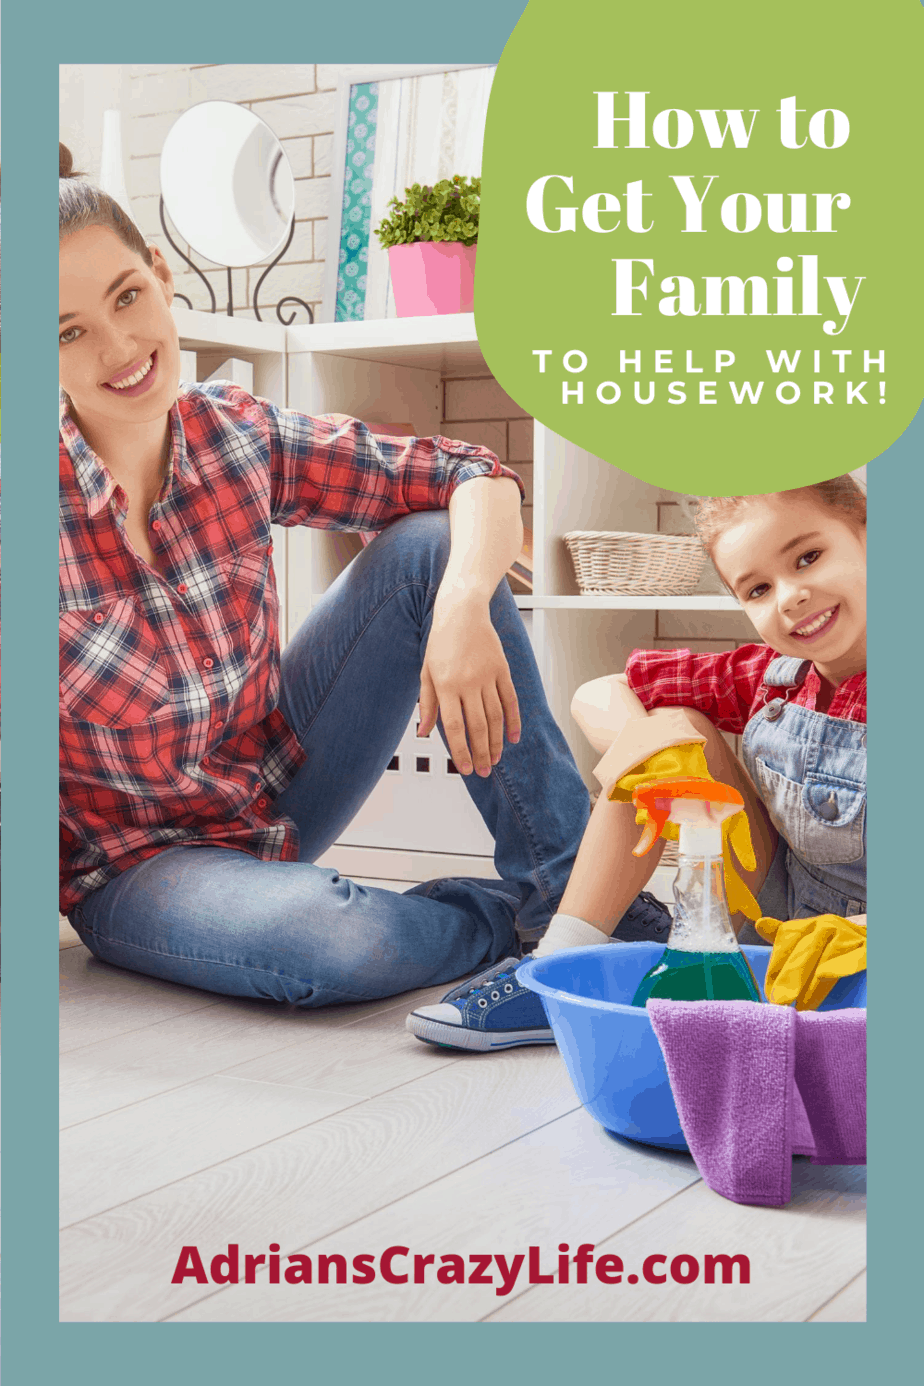 Get Your Family to Help with Housework